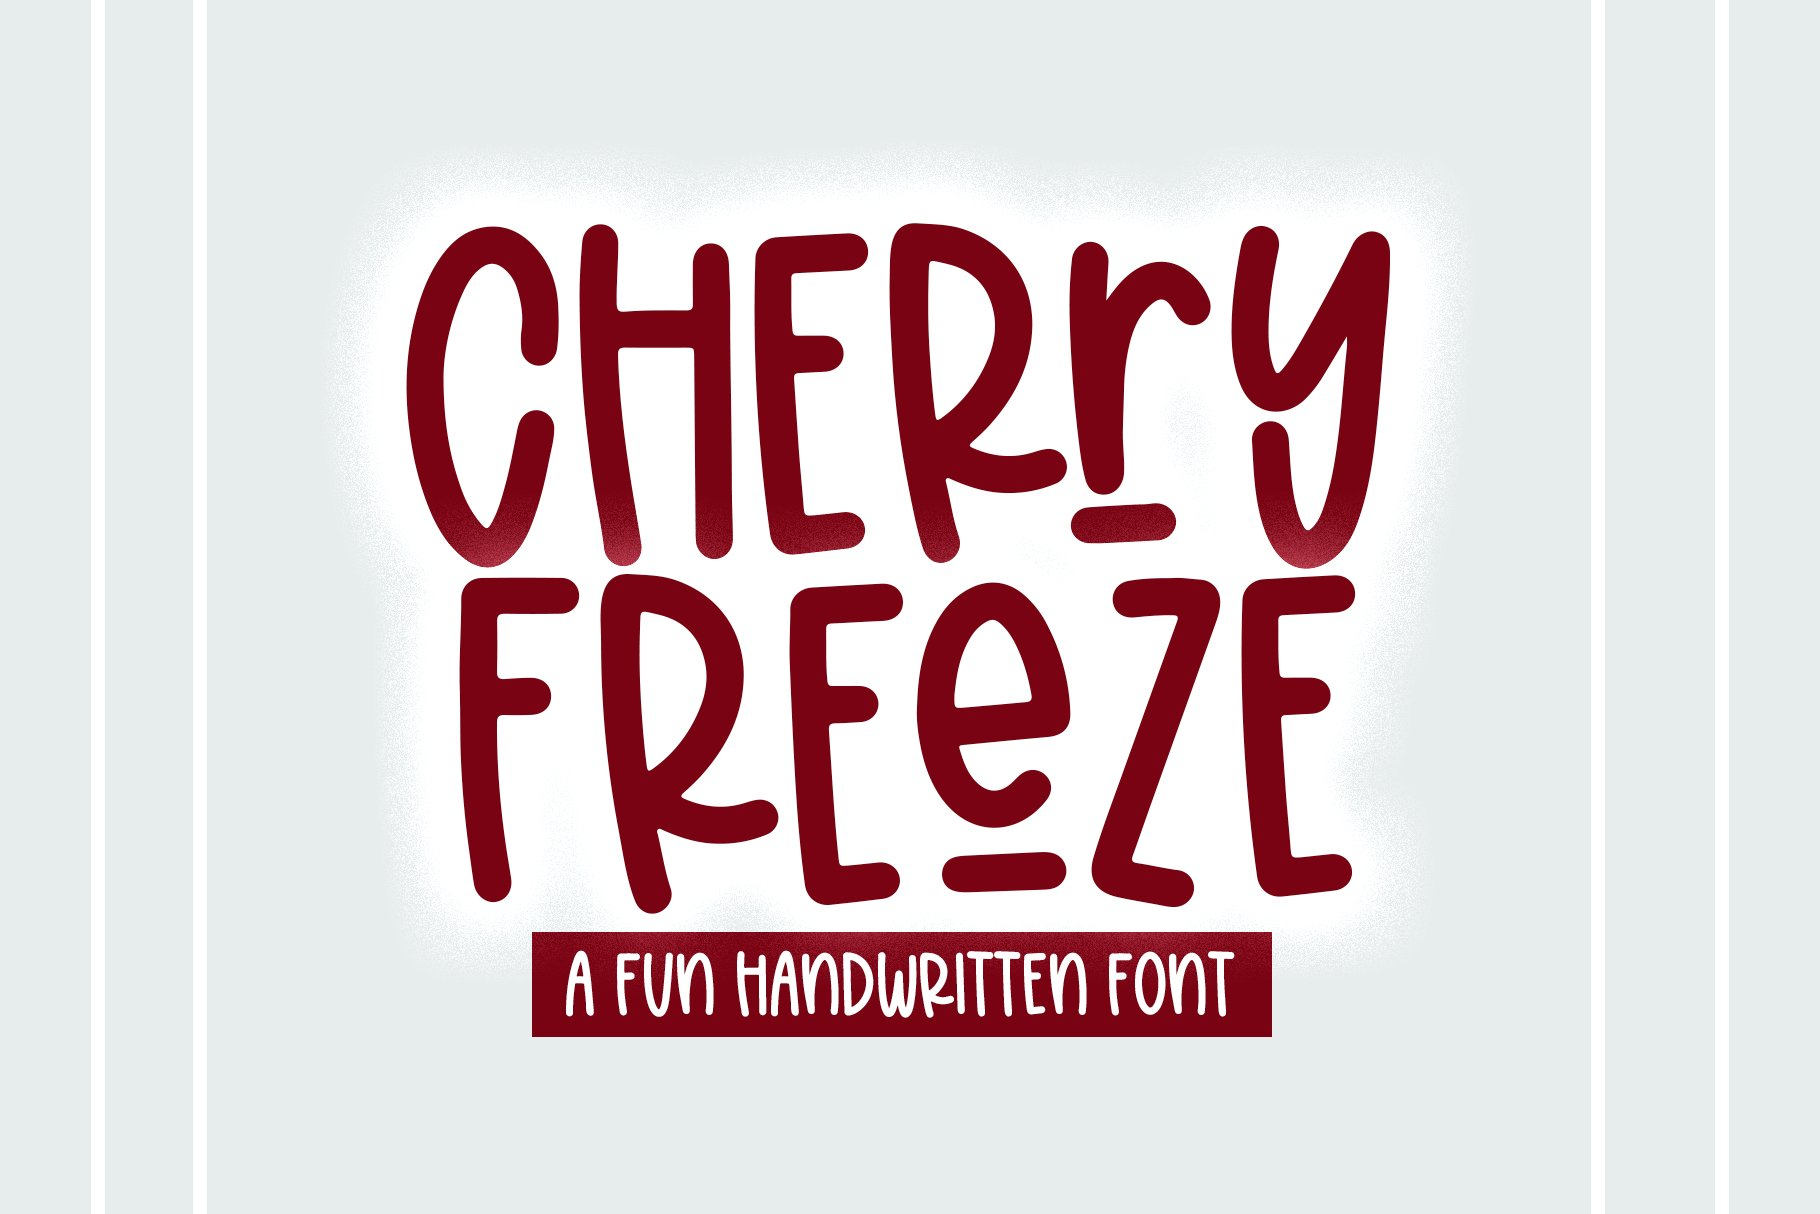 Cherry Freeze - A Quirky Handwritten Font example image 1